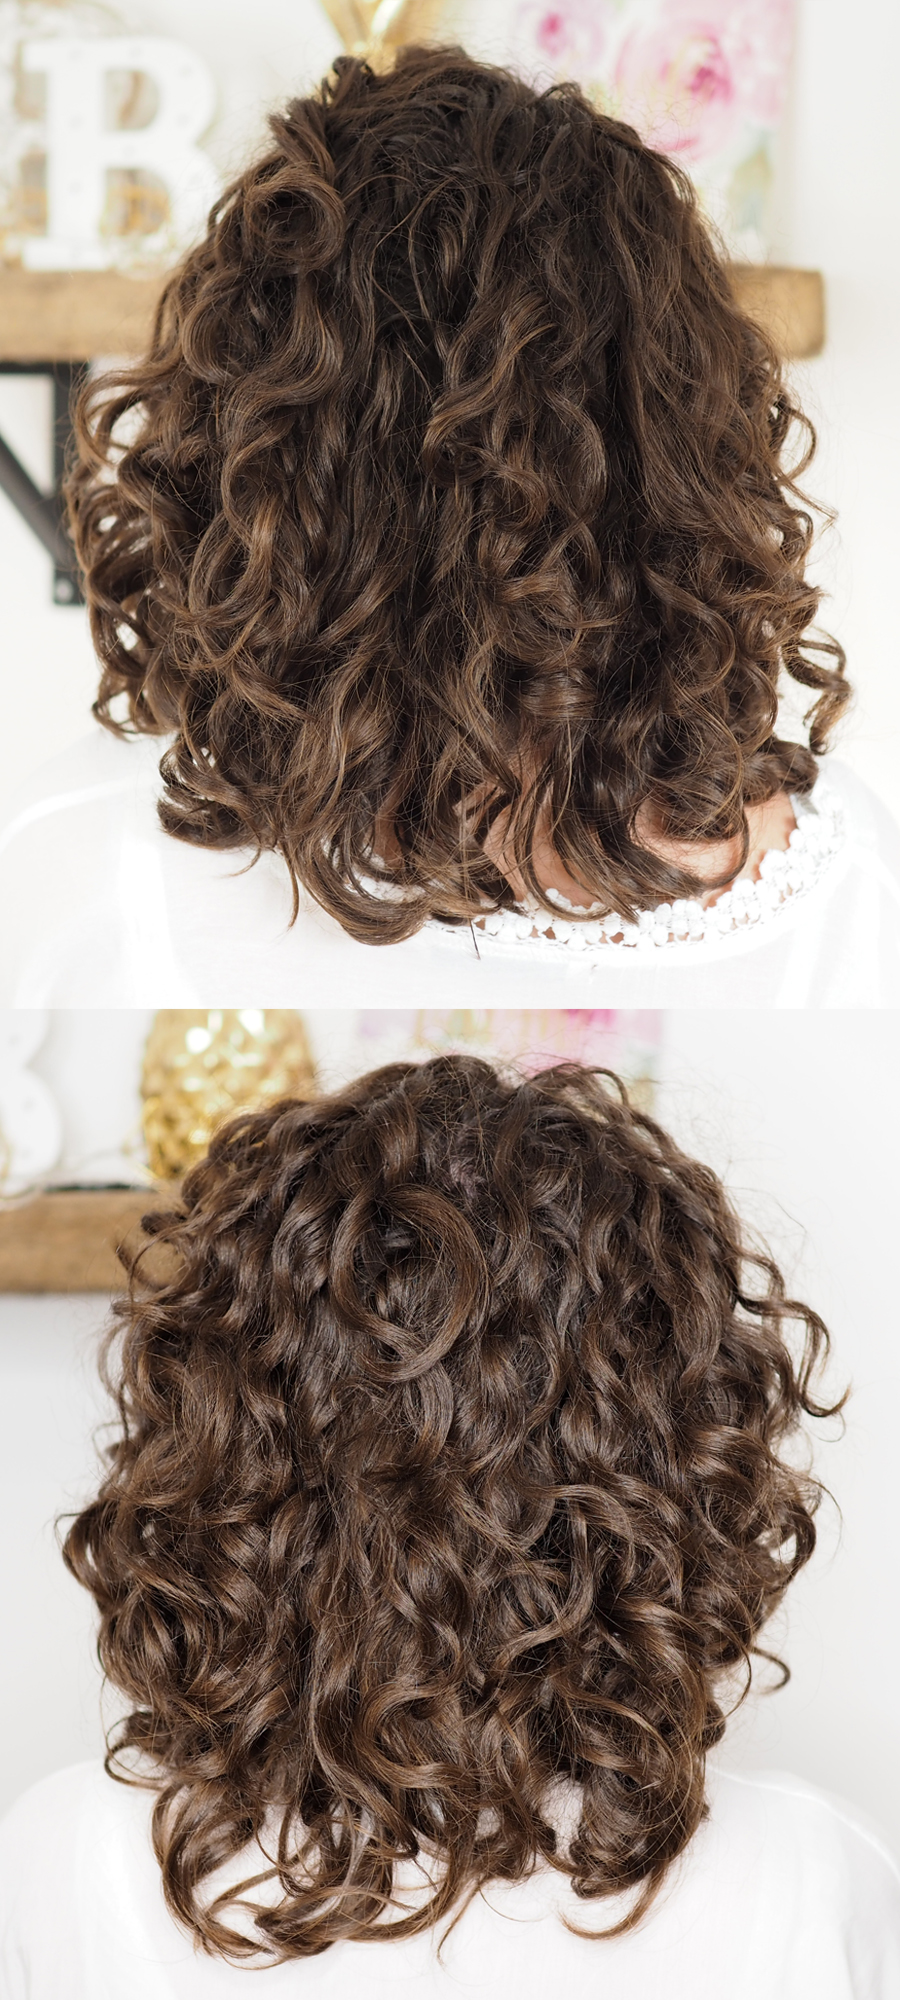 DIY Cut for Shape & Volume  Curly Cailín